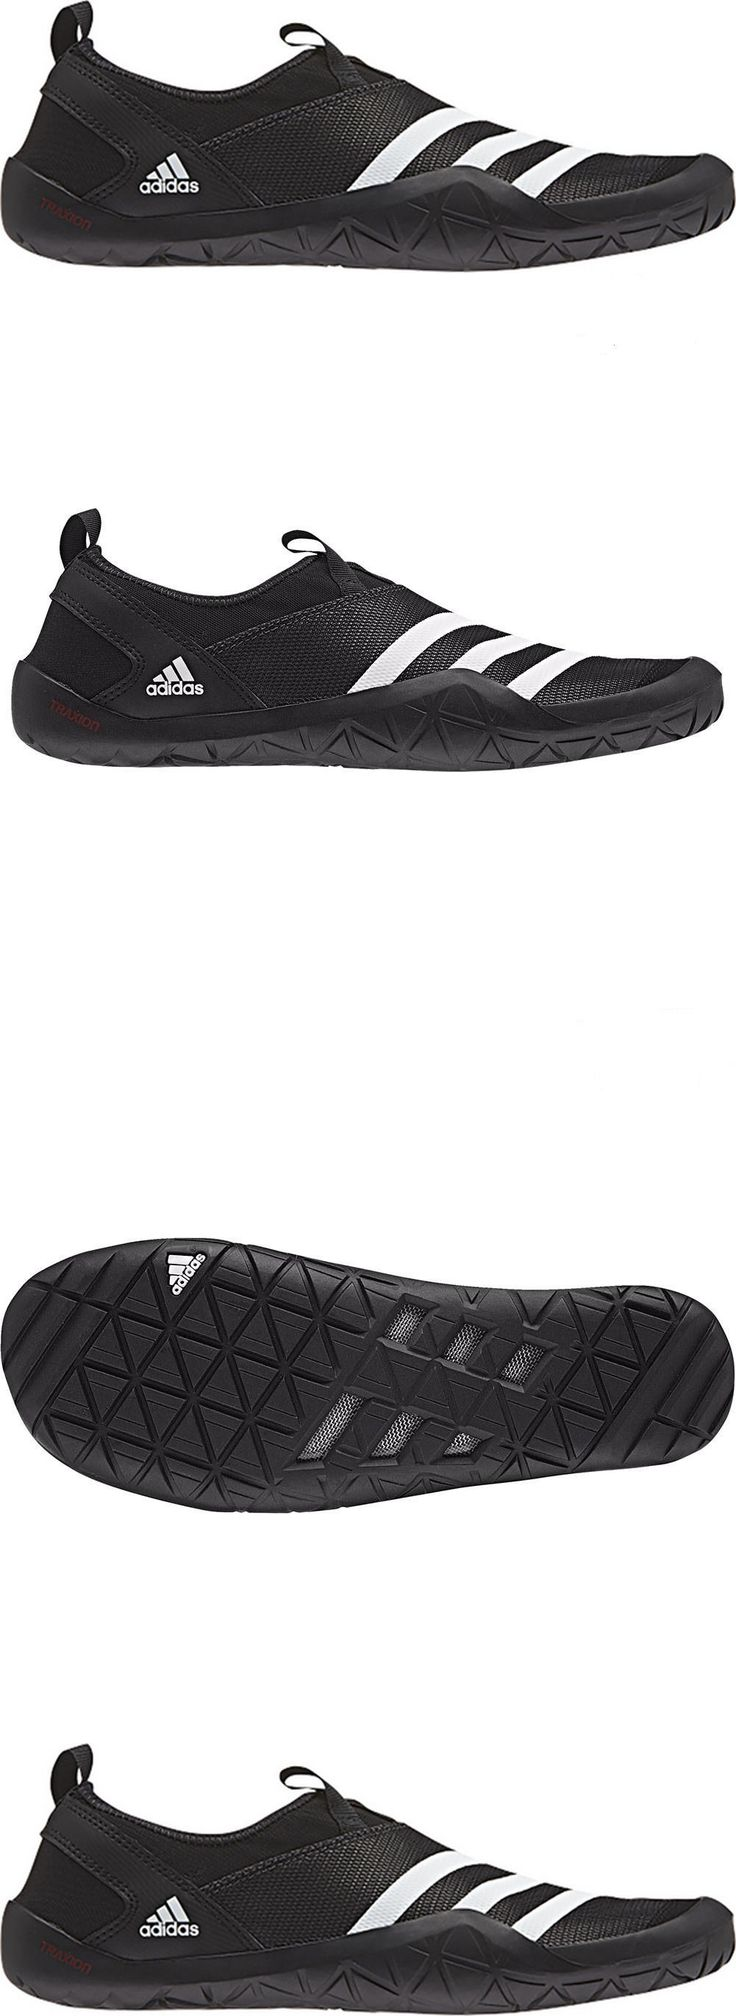 100% authentic bfdac ae803 17 Best ideas about Adidas Climacool Shoes on Pinterest   Adidas pants,  Adidas sweatpants and Adidas